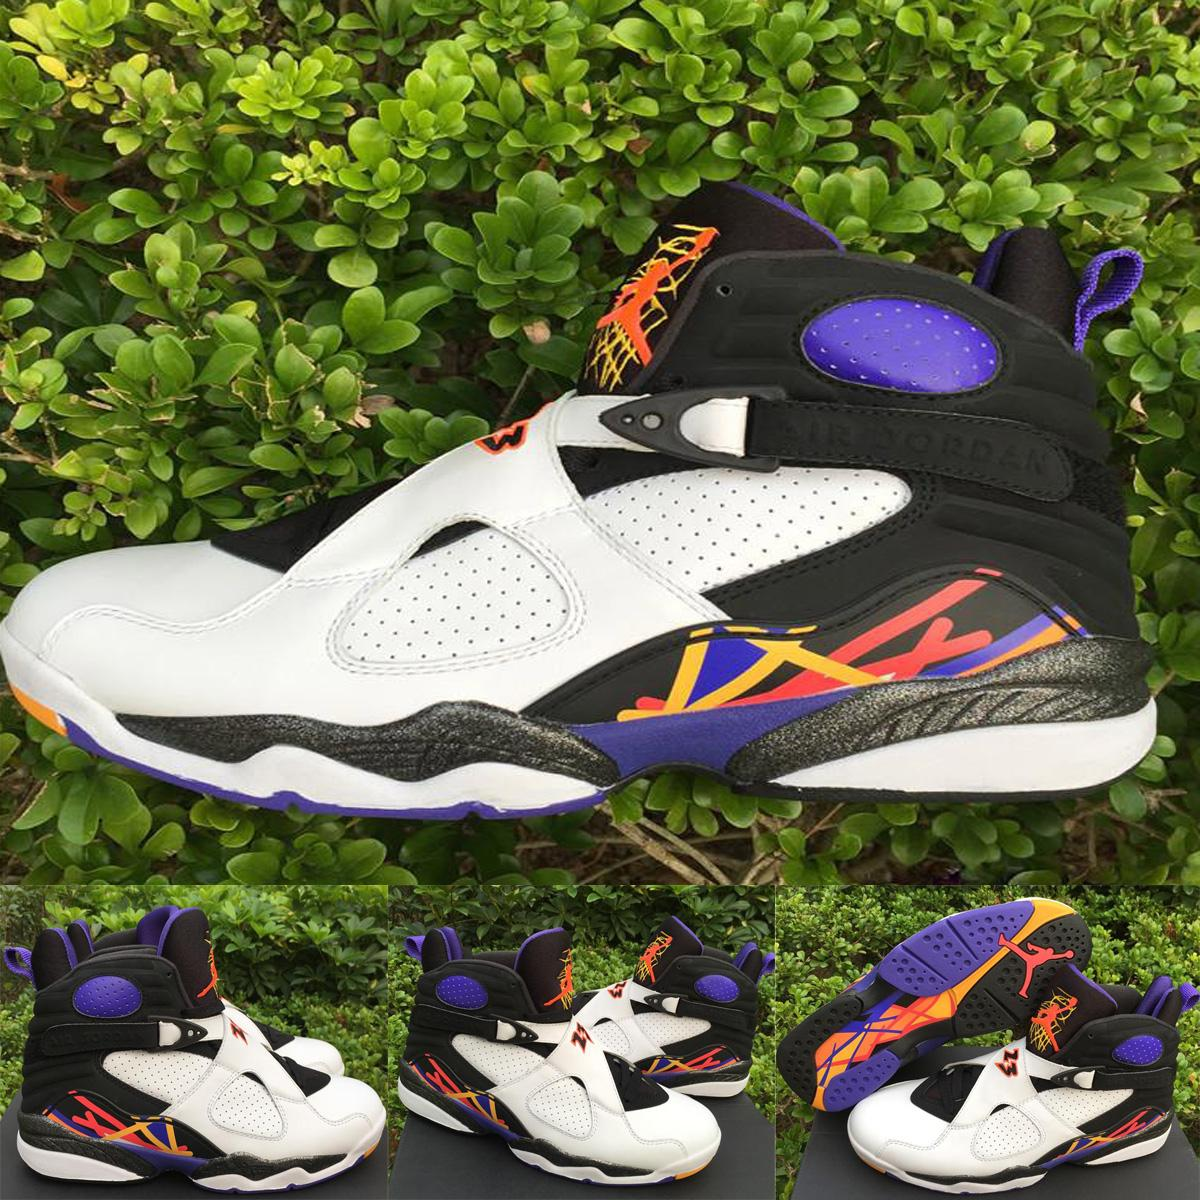 1229f24531bd Nike Air Jordan 8 Retro Viii 3 Peat Three Peat White Infrared Concord Mens  Basketball Sneakers Jordan Shoes 305381 142 100% Original Quality Sports  Shoes ...